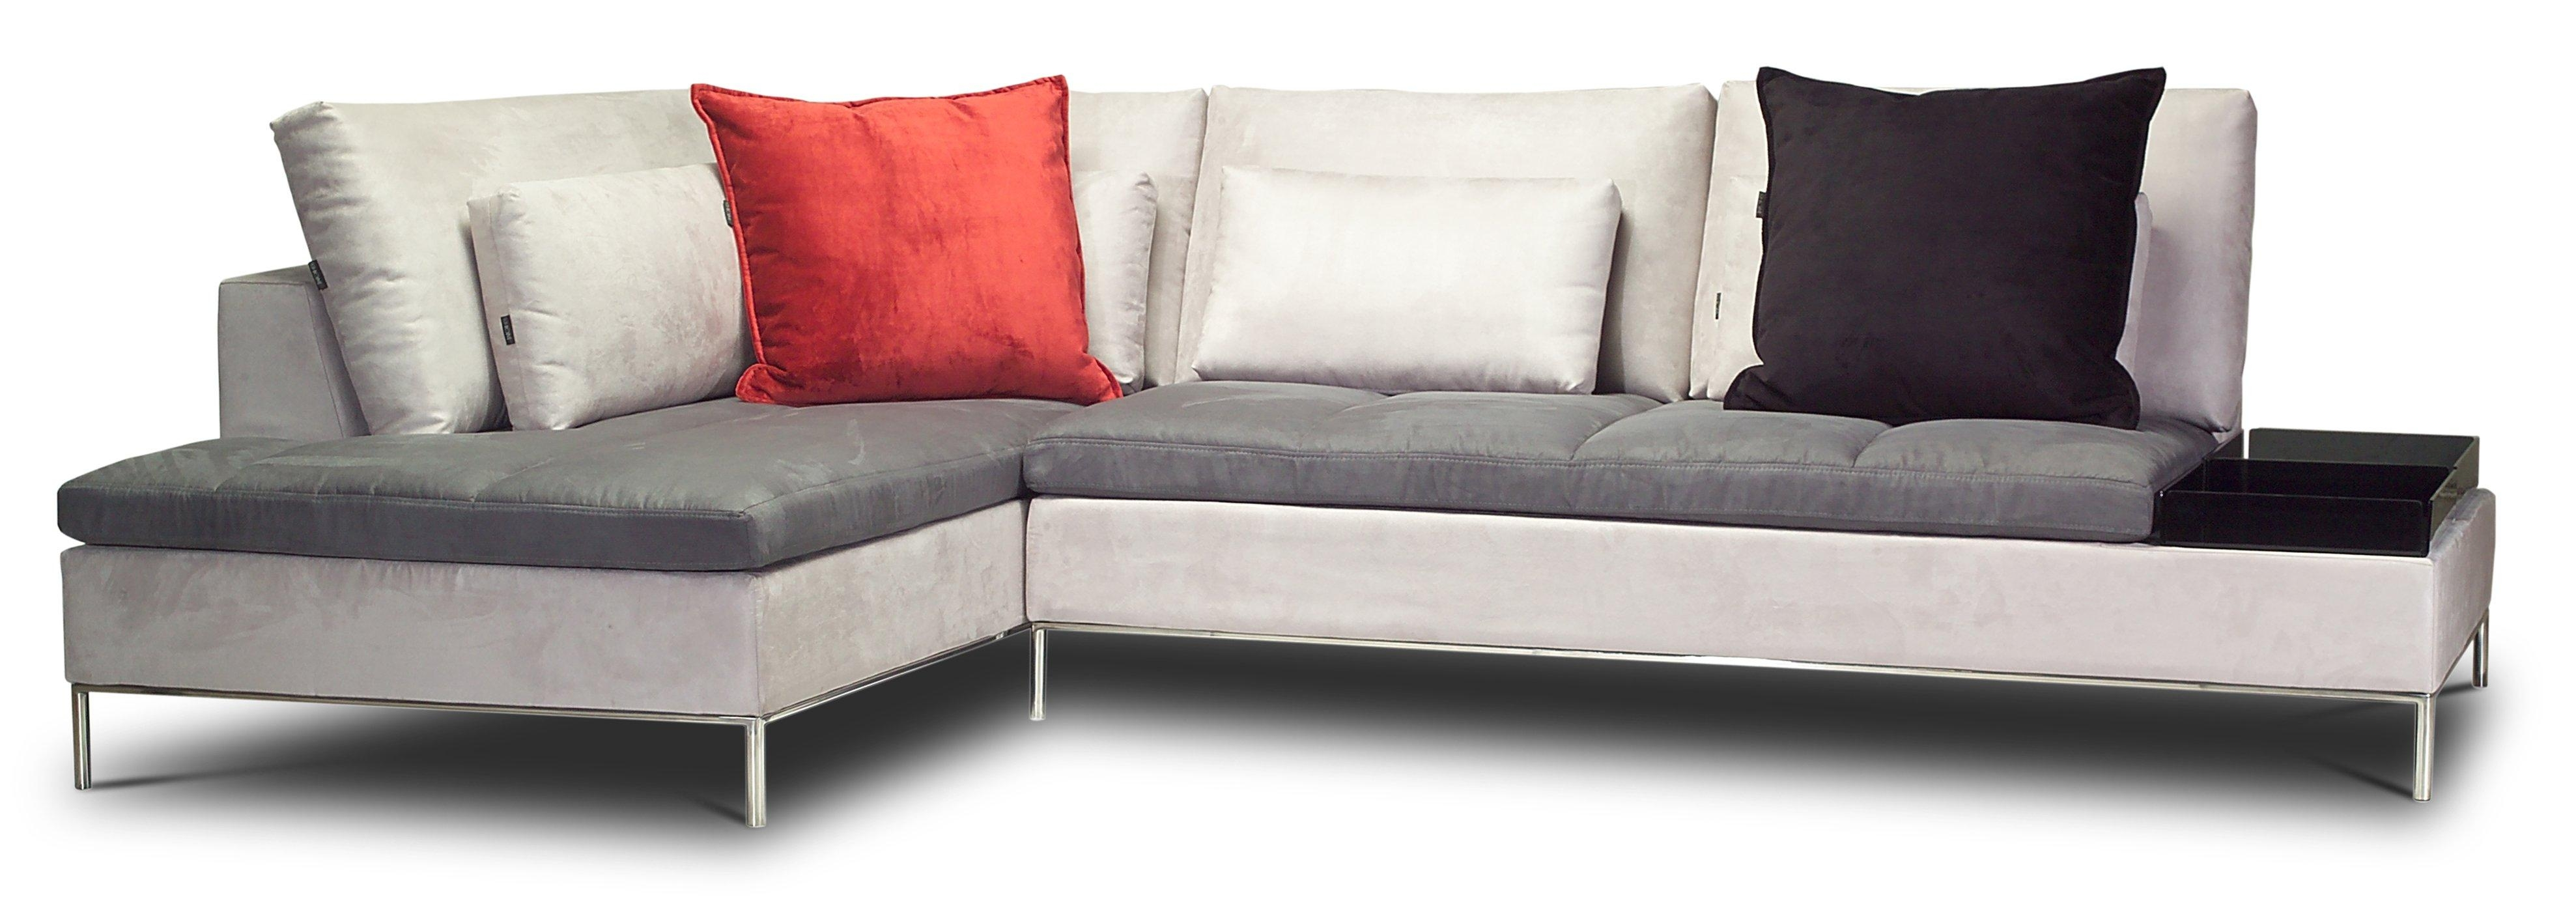 Sofa Bed Houston | Sofa Gallery | Kengire Intended For Modern Sofas Houston (View 15 of 20)